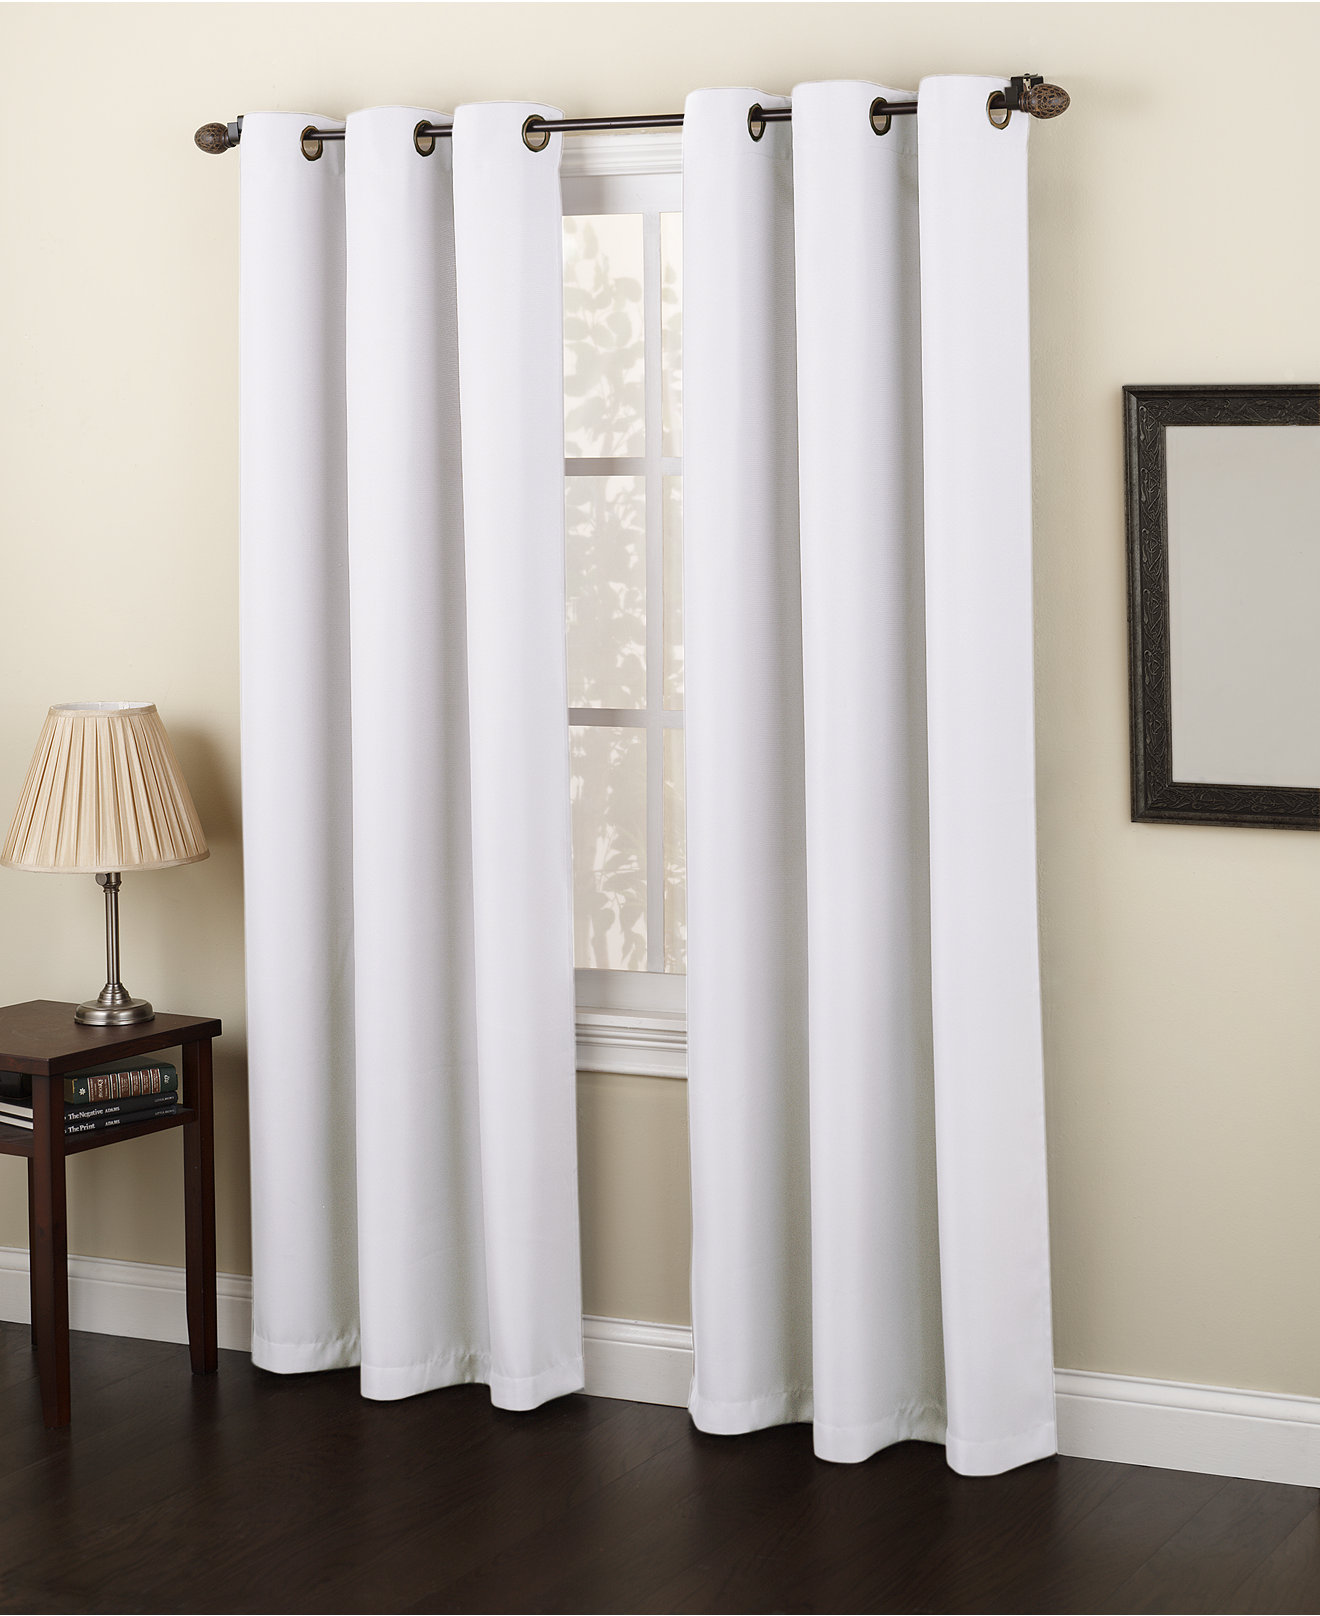 Buy Draperies Curtain Cheap White Blackout Curtains Where To Buy Blackout